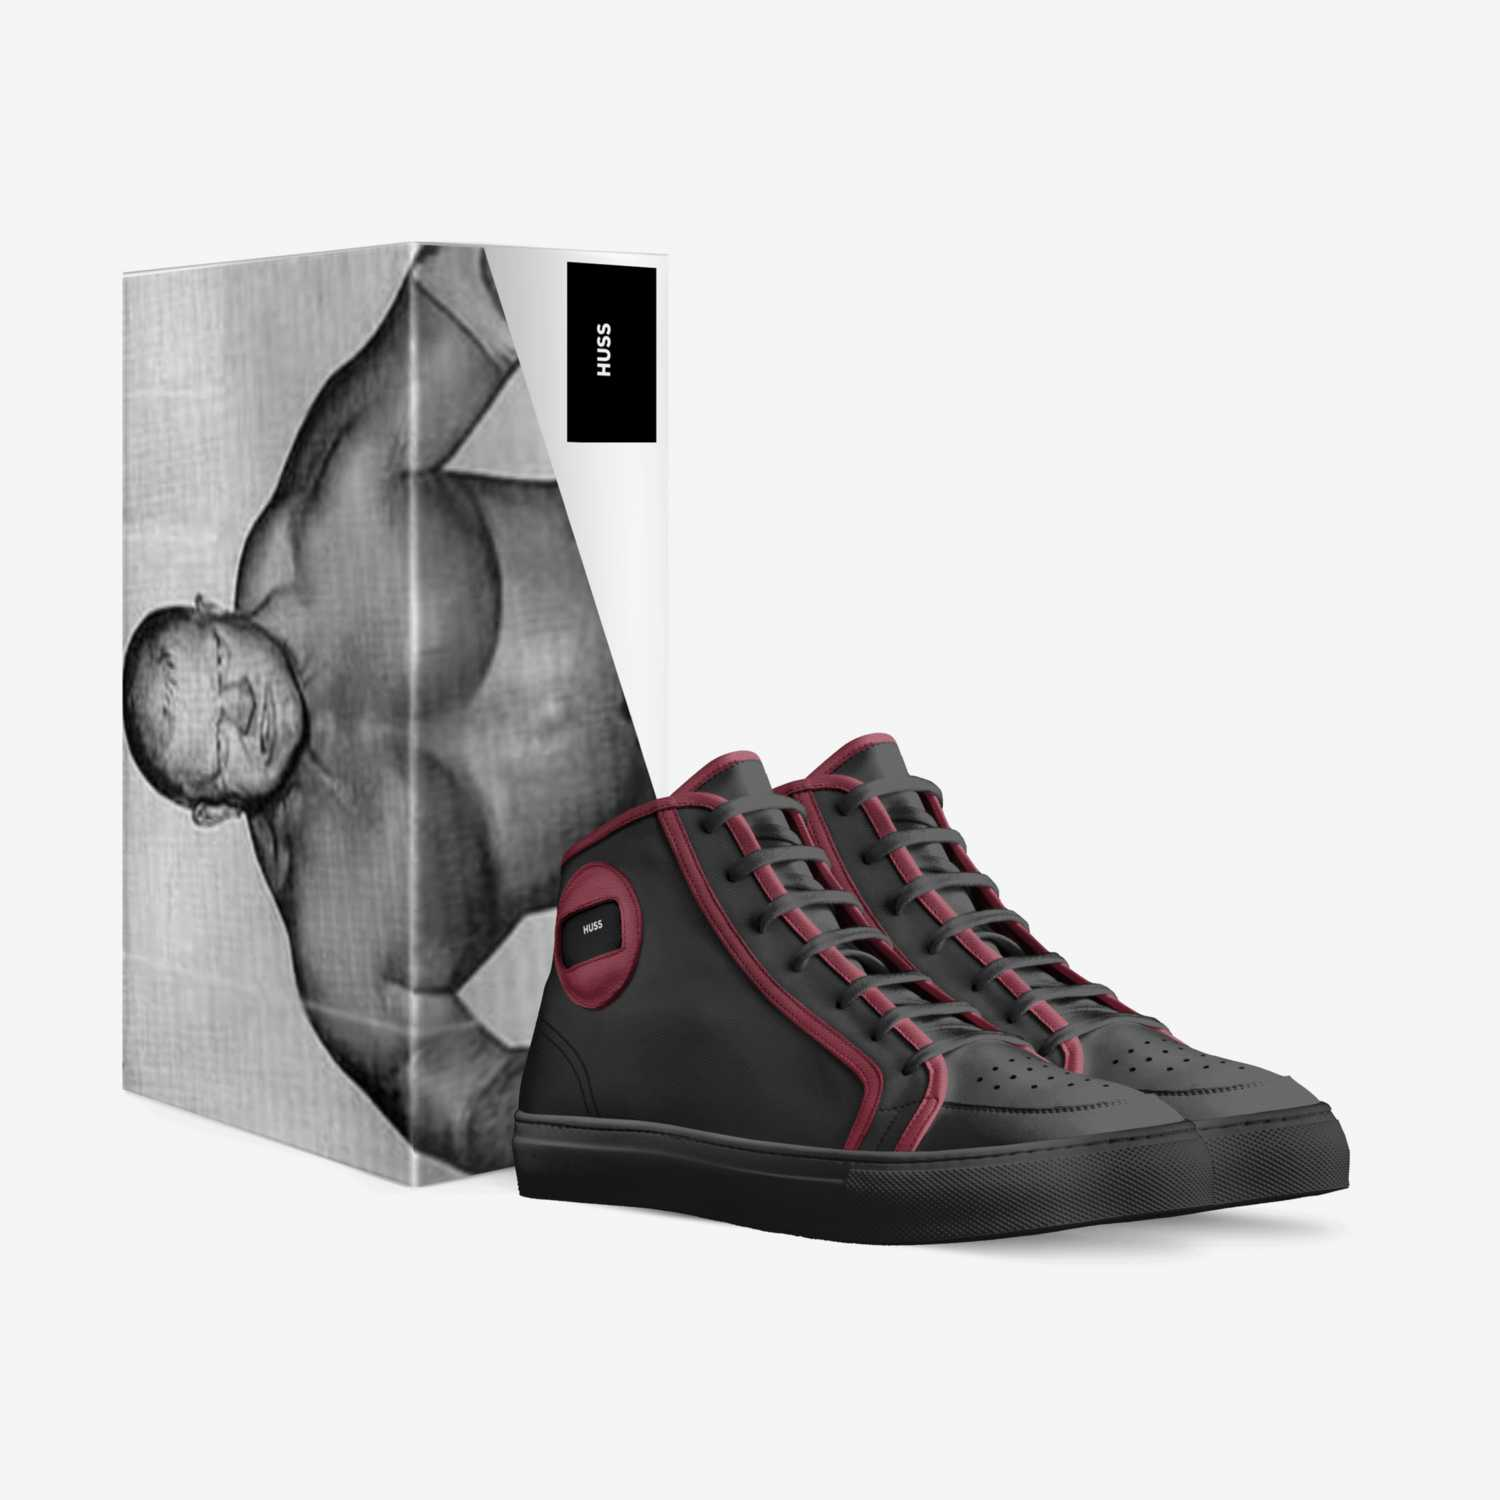 HUSS BRUISERS custom made in Italy shoes by Chris Johnson | Box view